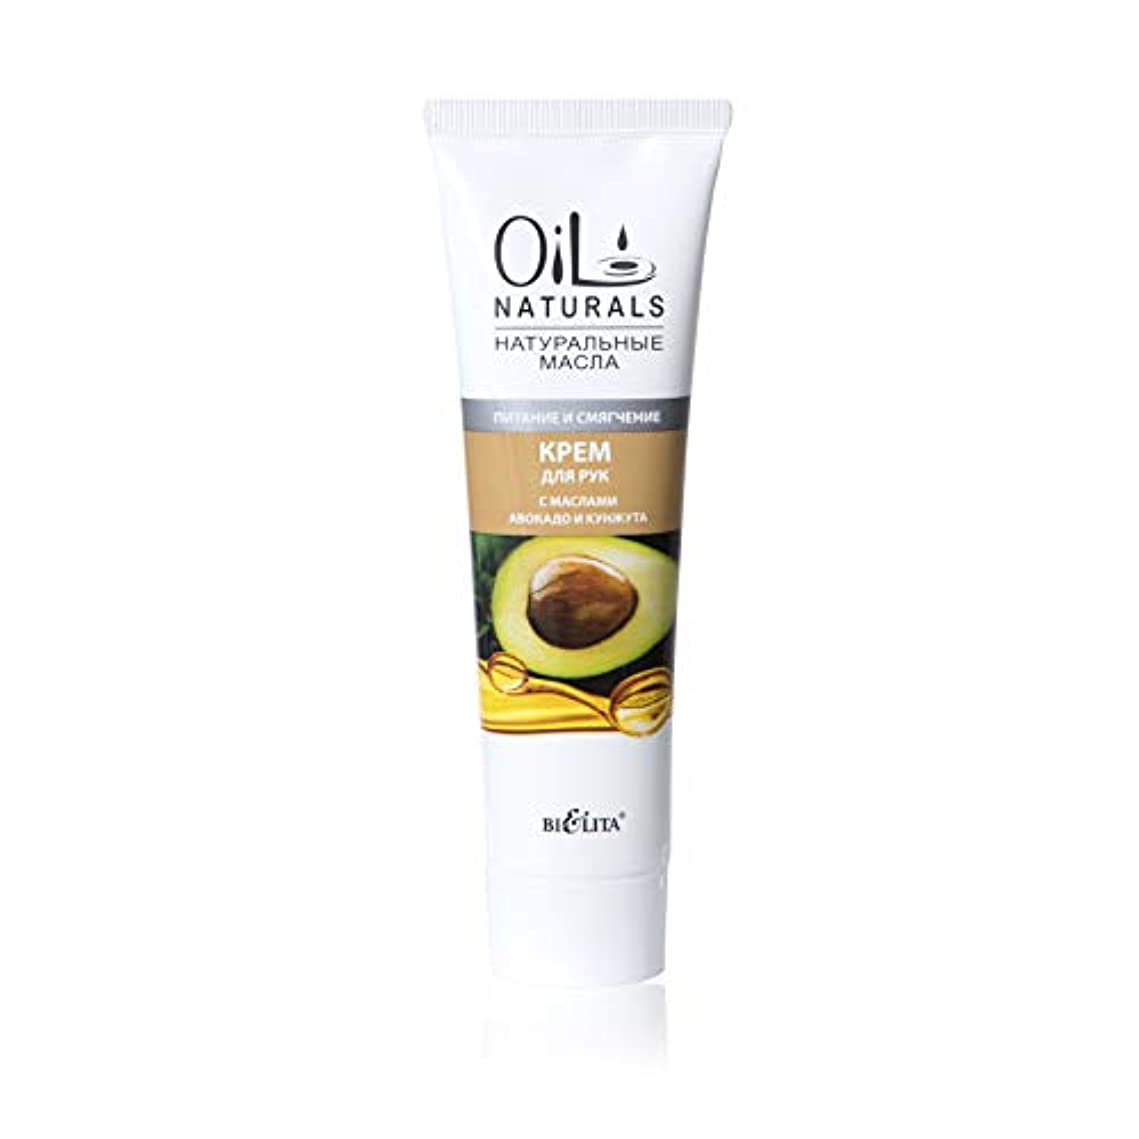 埋め込む教室移動するBielita & Vitex Oil Naturals Line | Nutrition & Softening Hand Cream, 100 ml | Avocado Oil, Silk Proteins, Sesame...